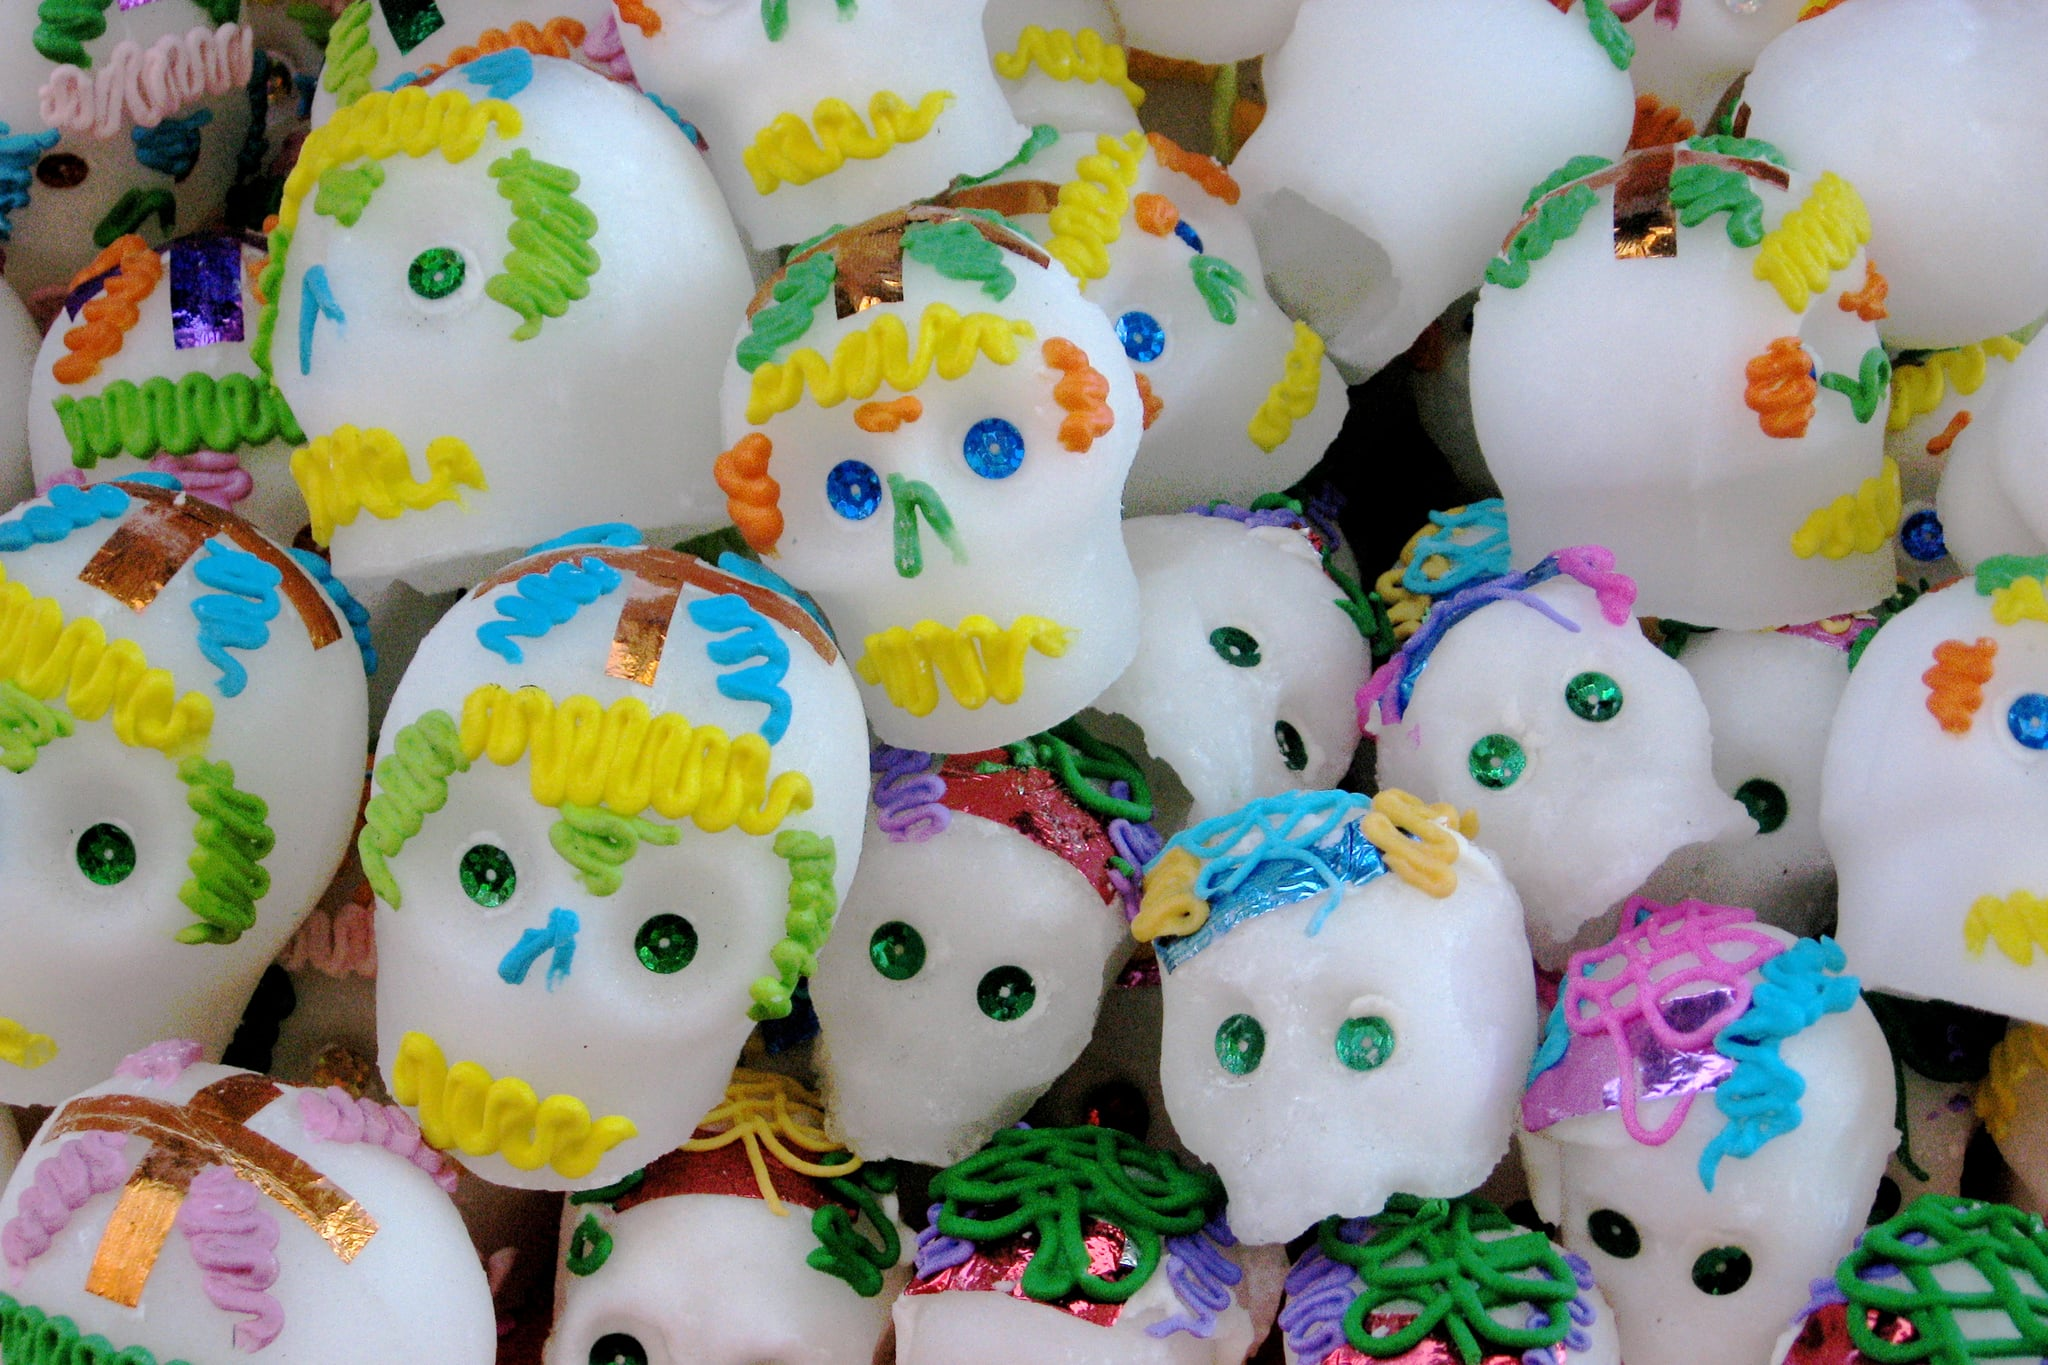 Whats The Meaning Behind Day Of The Dead Sugar Skulls Popsugar